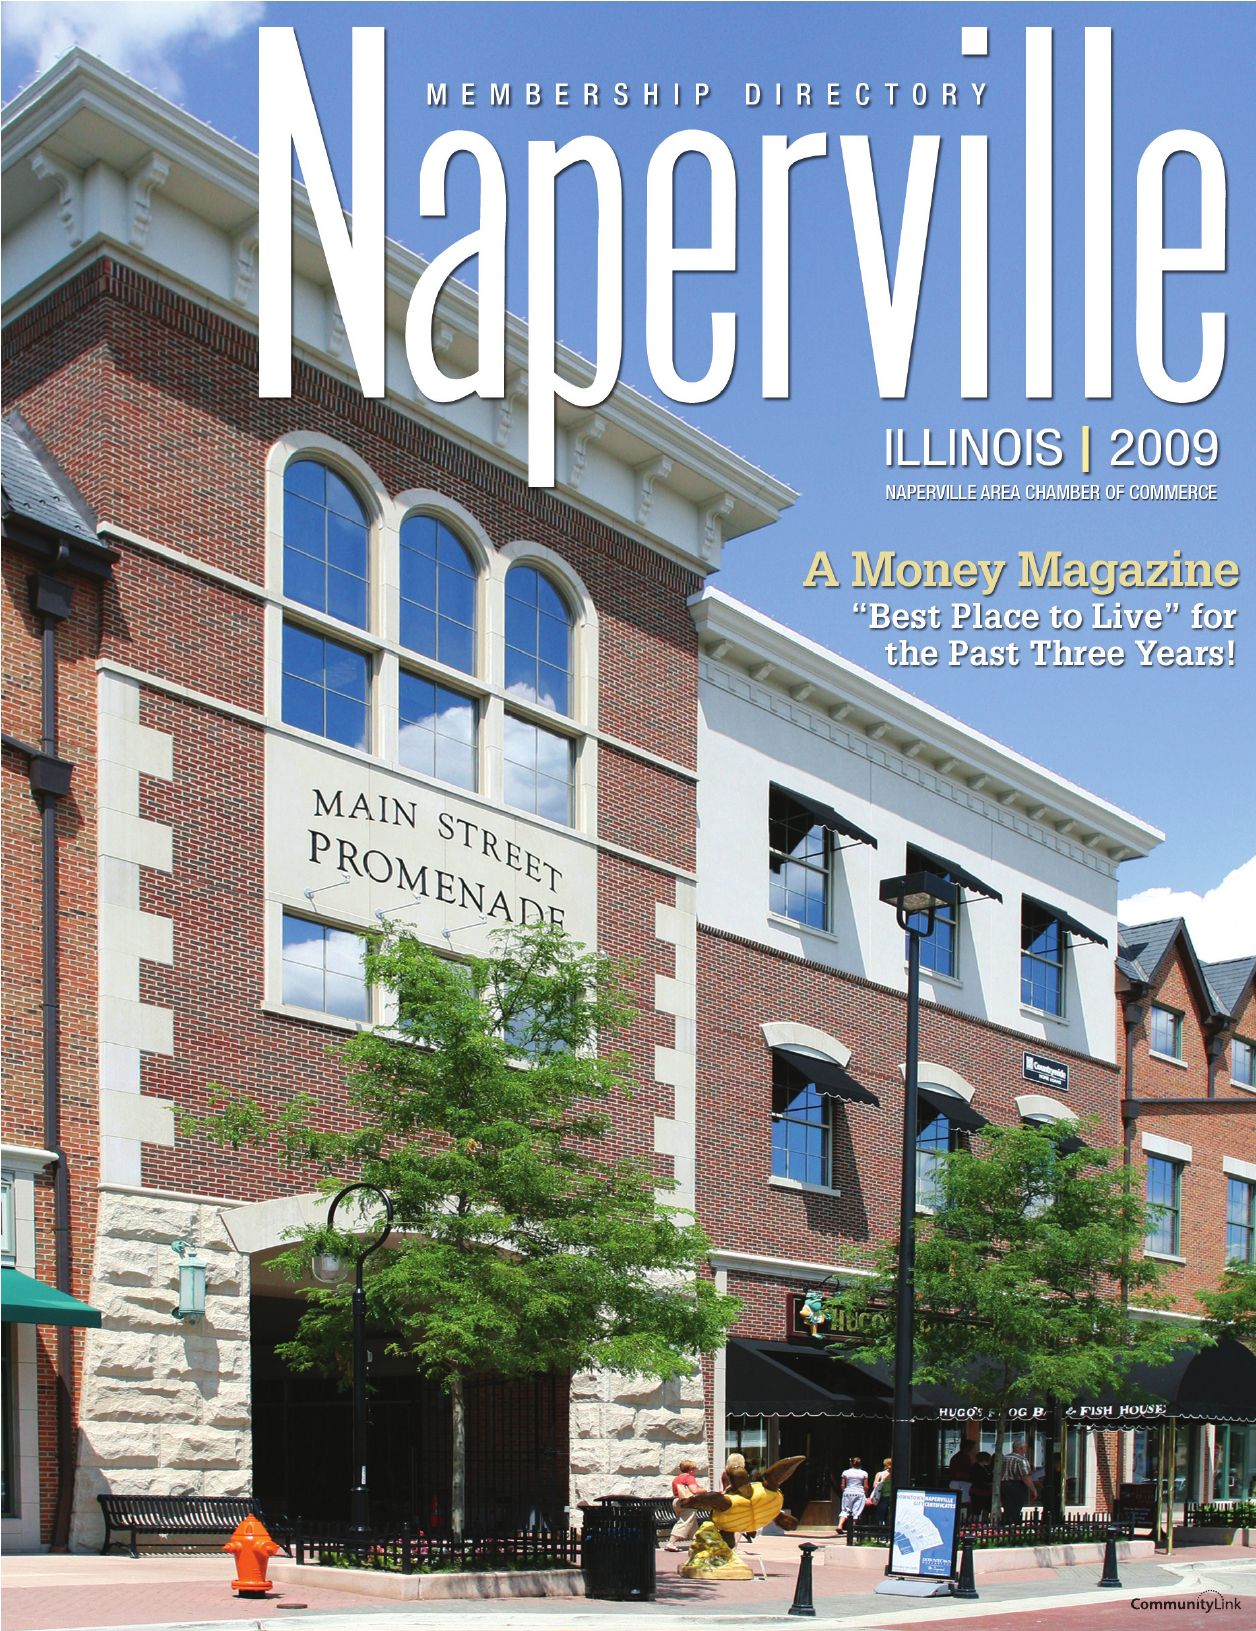 Naperville IL 2009 Membership Directory by munityLink issuu